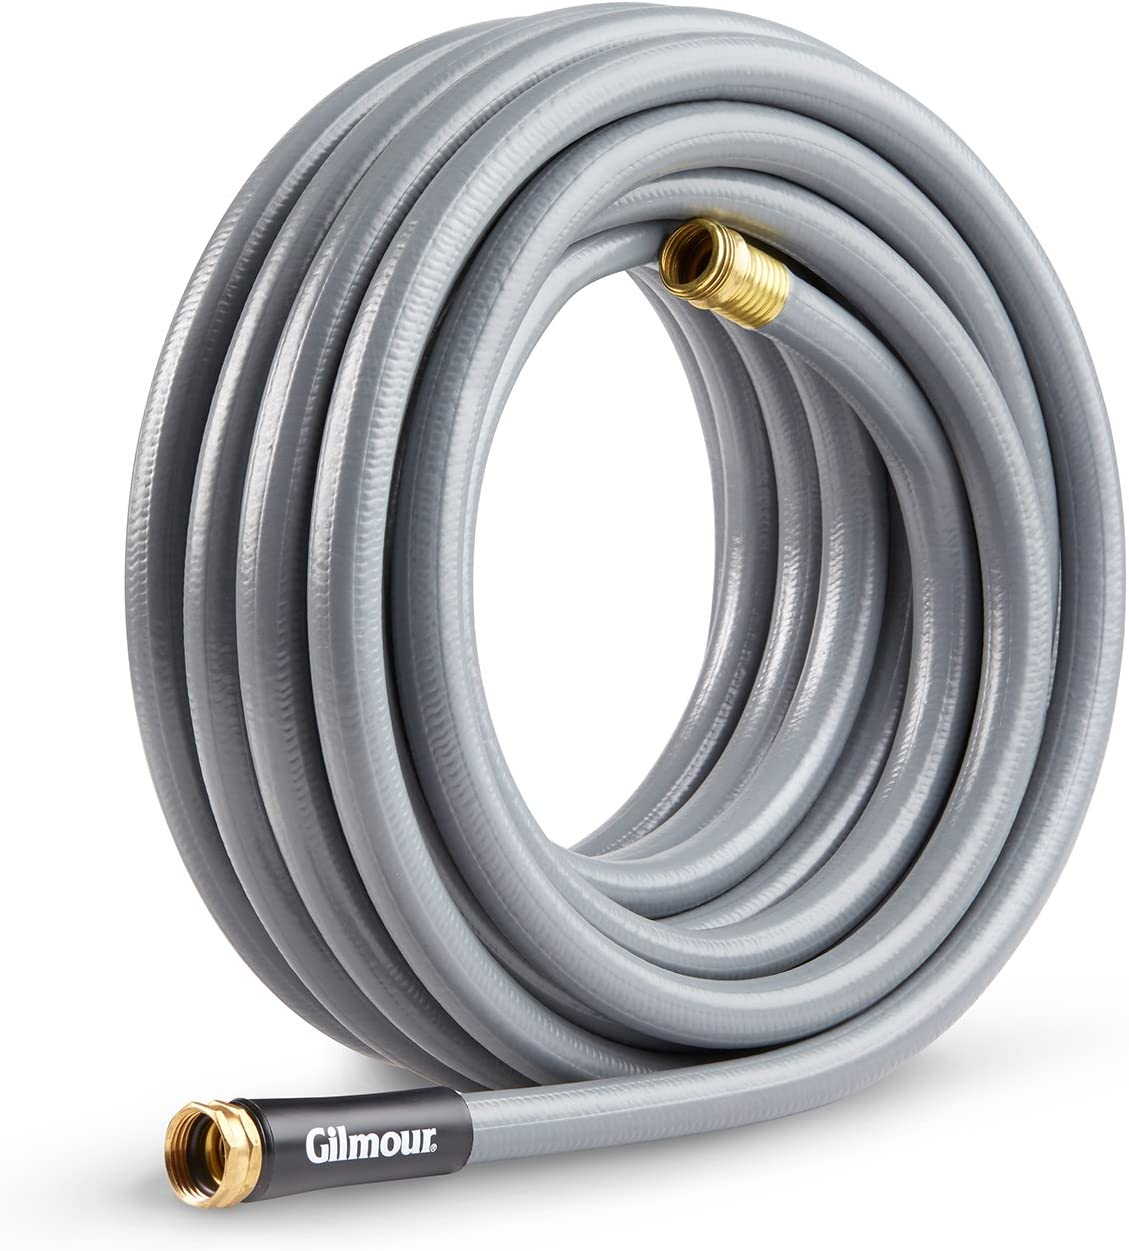 Gilmour 29 Series 6 Ply Commercial Rubber/Vinyl Hose 5/8 Inch x 75 Fee 29-58075 Gray (Discontinued by Manufacturer)